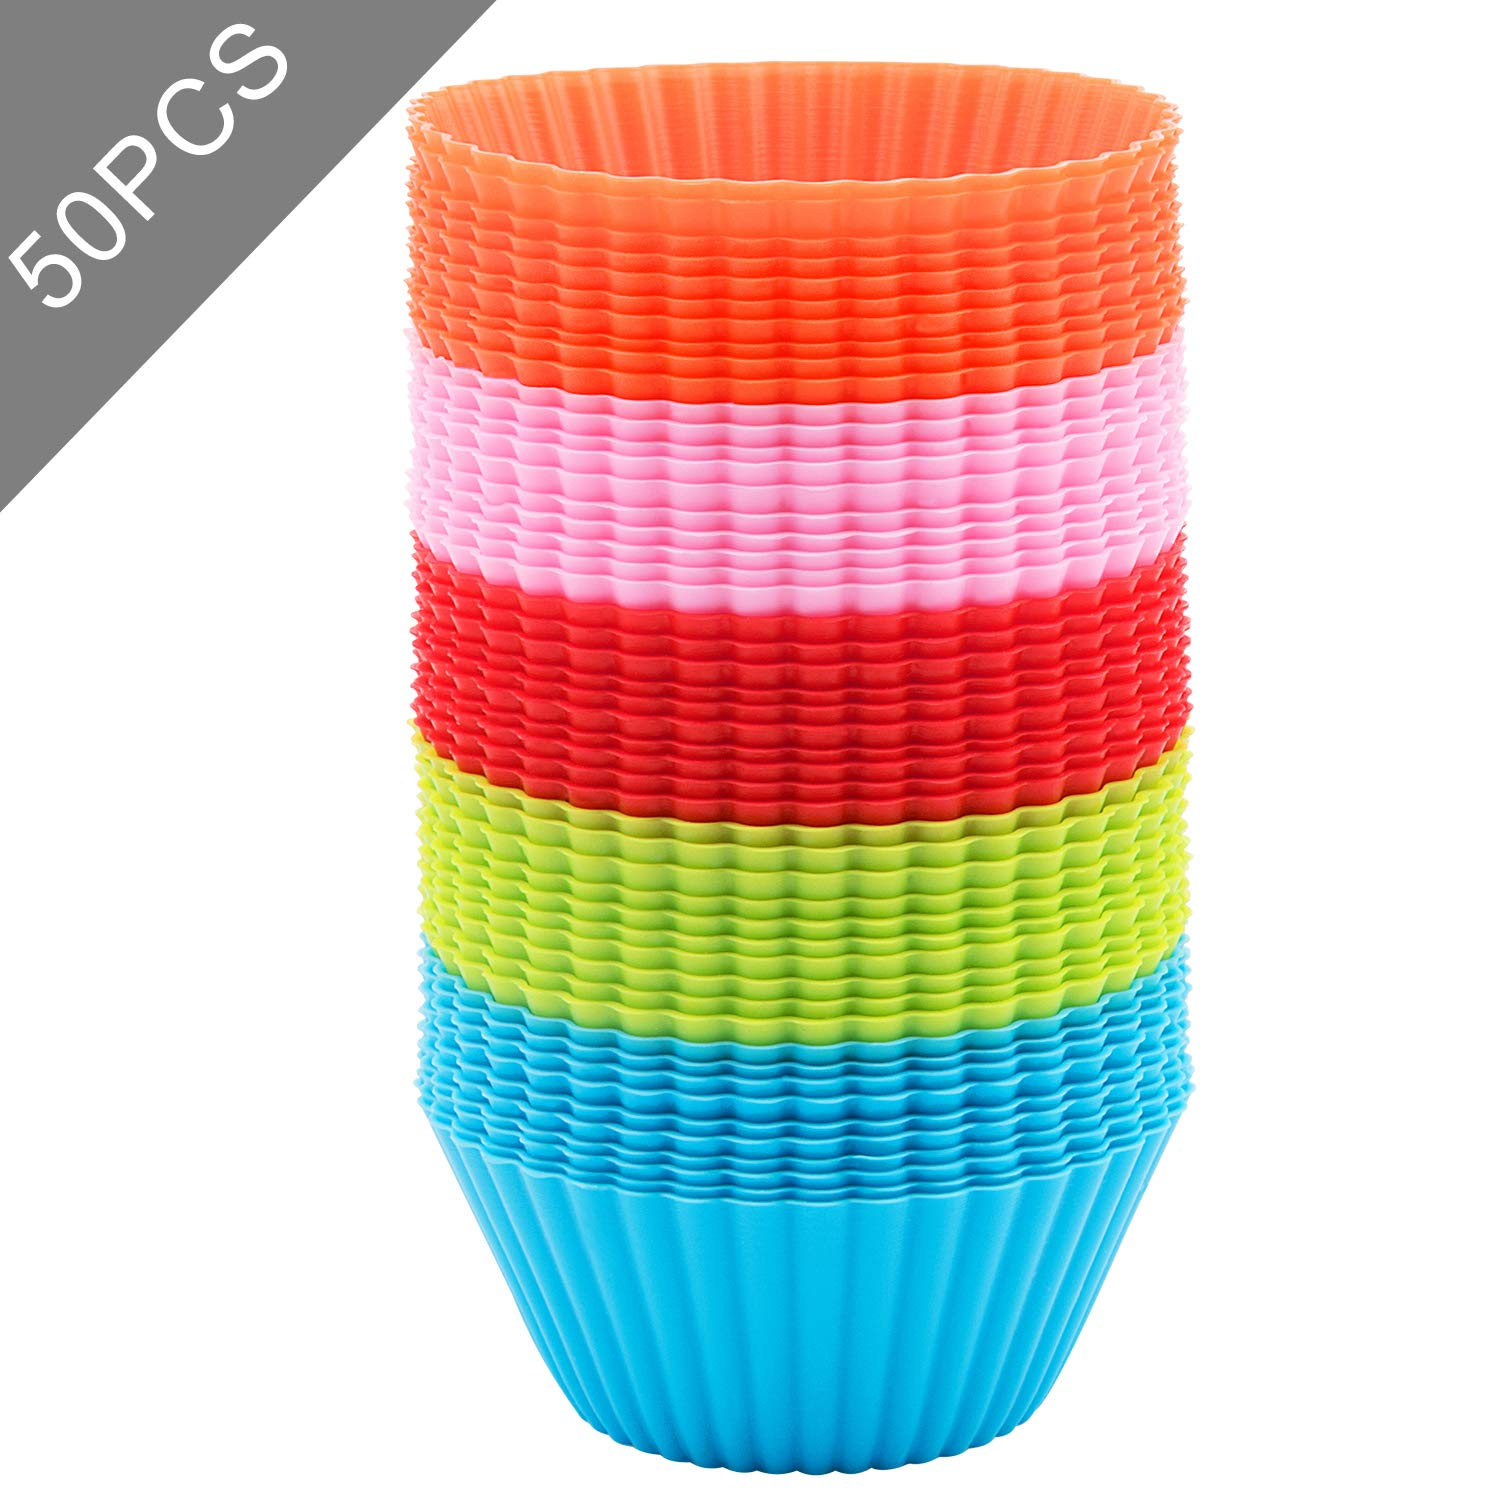 Silicone Cupcake Liner, Baking Cups 50 PCS, Reusable Non-stick Muffin Cups Cake Molds Standard, Multi-color